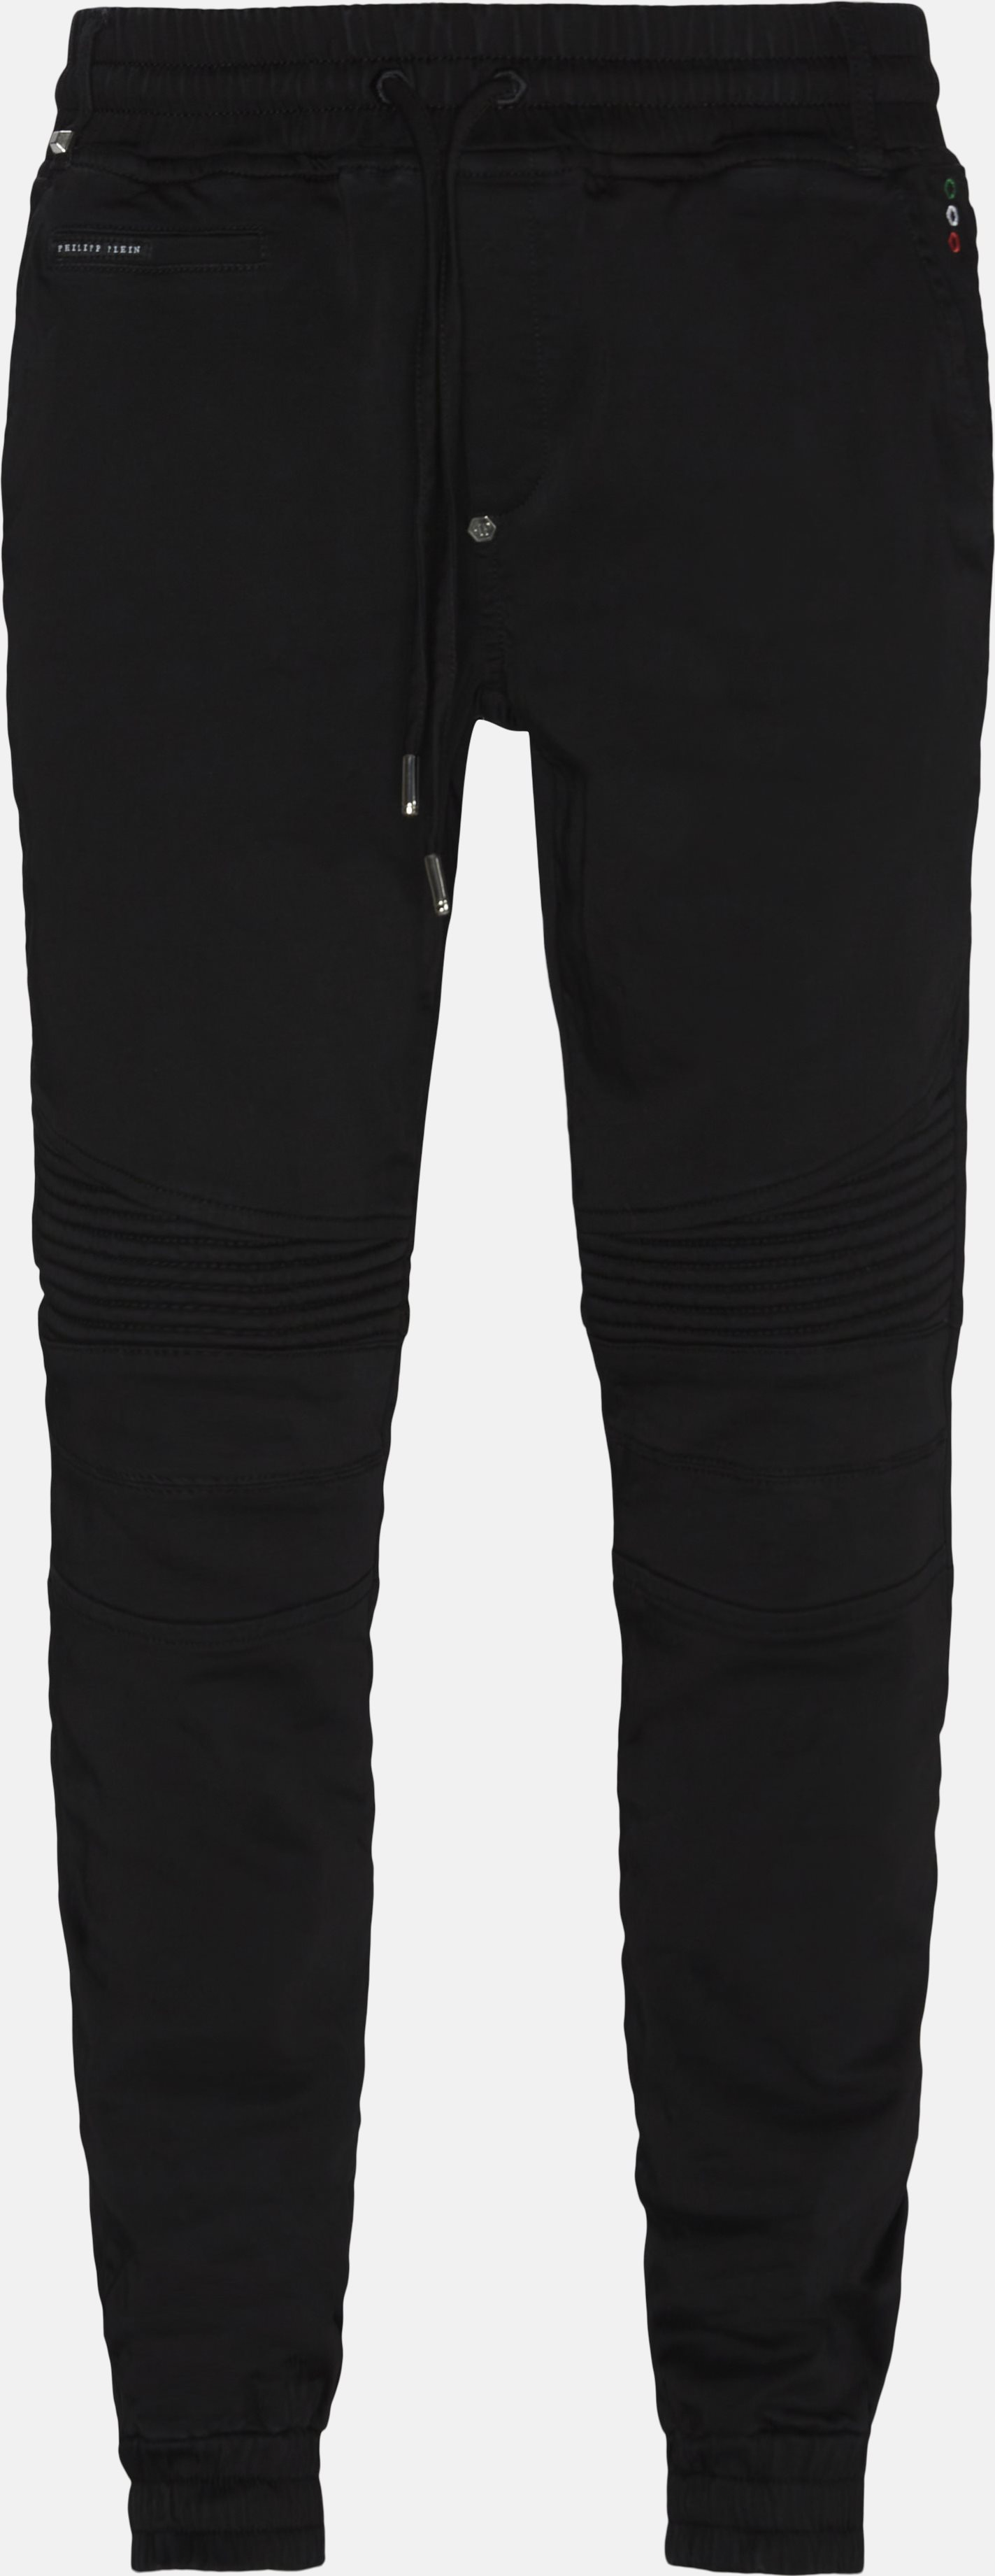 Comfort pants - Regular fit - Sort